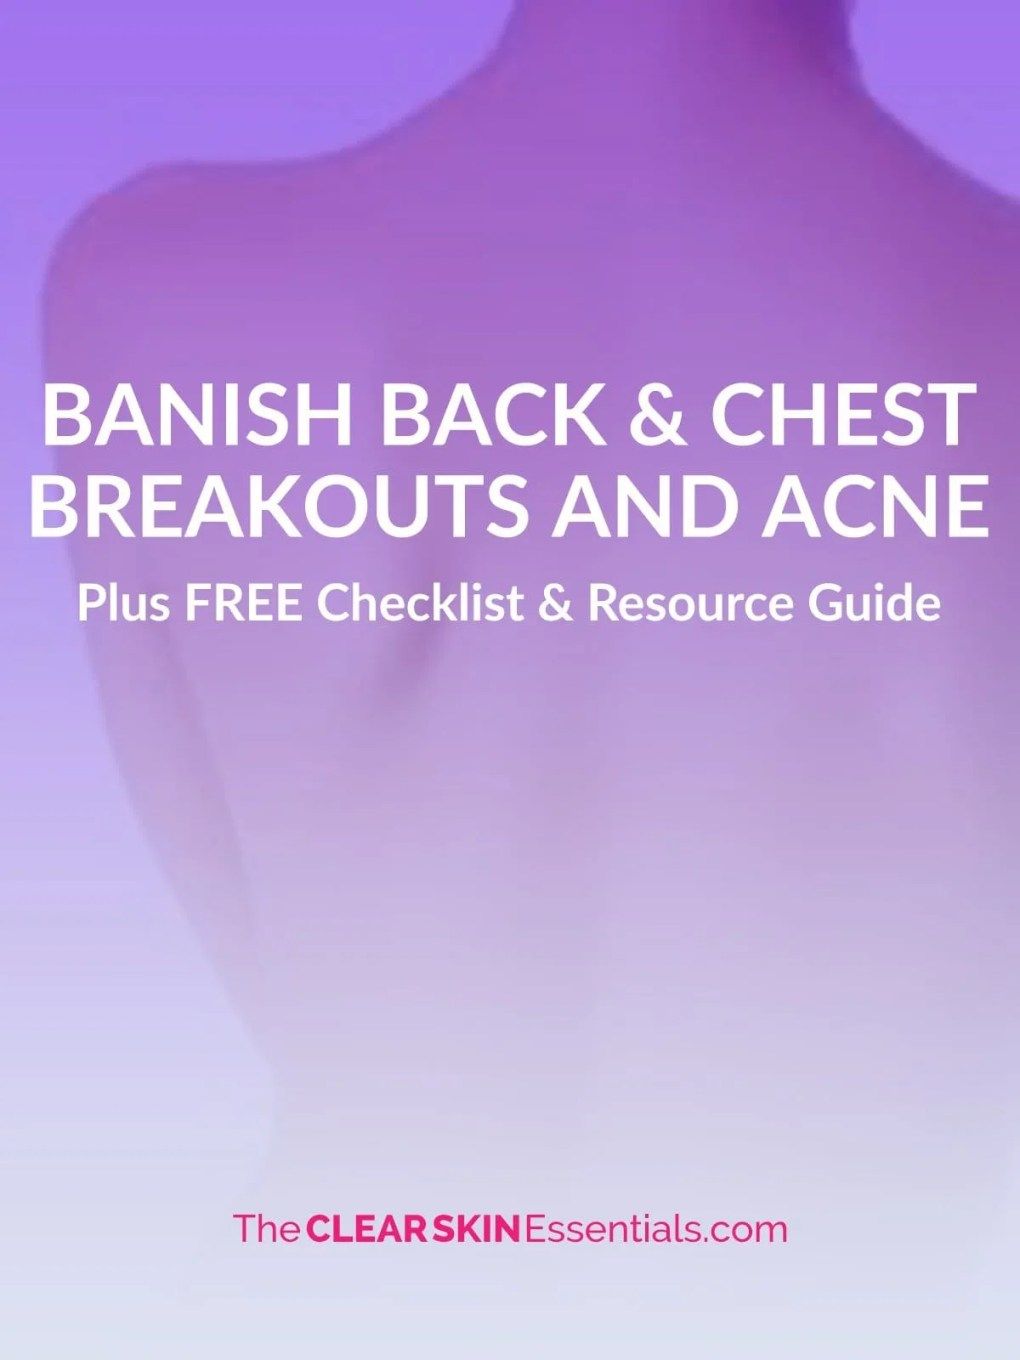 Learn exactly what you need to do with your diet, lifestyle, and skin care routine to clear up chest and back acne and breakouts. Click through to get your FREE Checklist and Resource Guide. | www.TheClearSkinEssentials.com